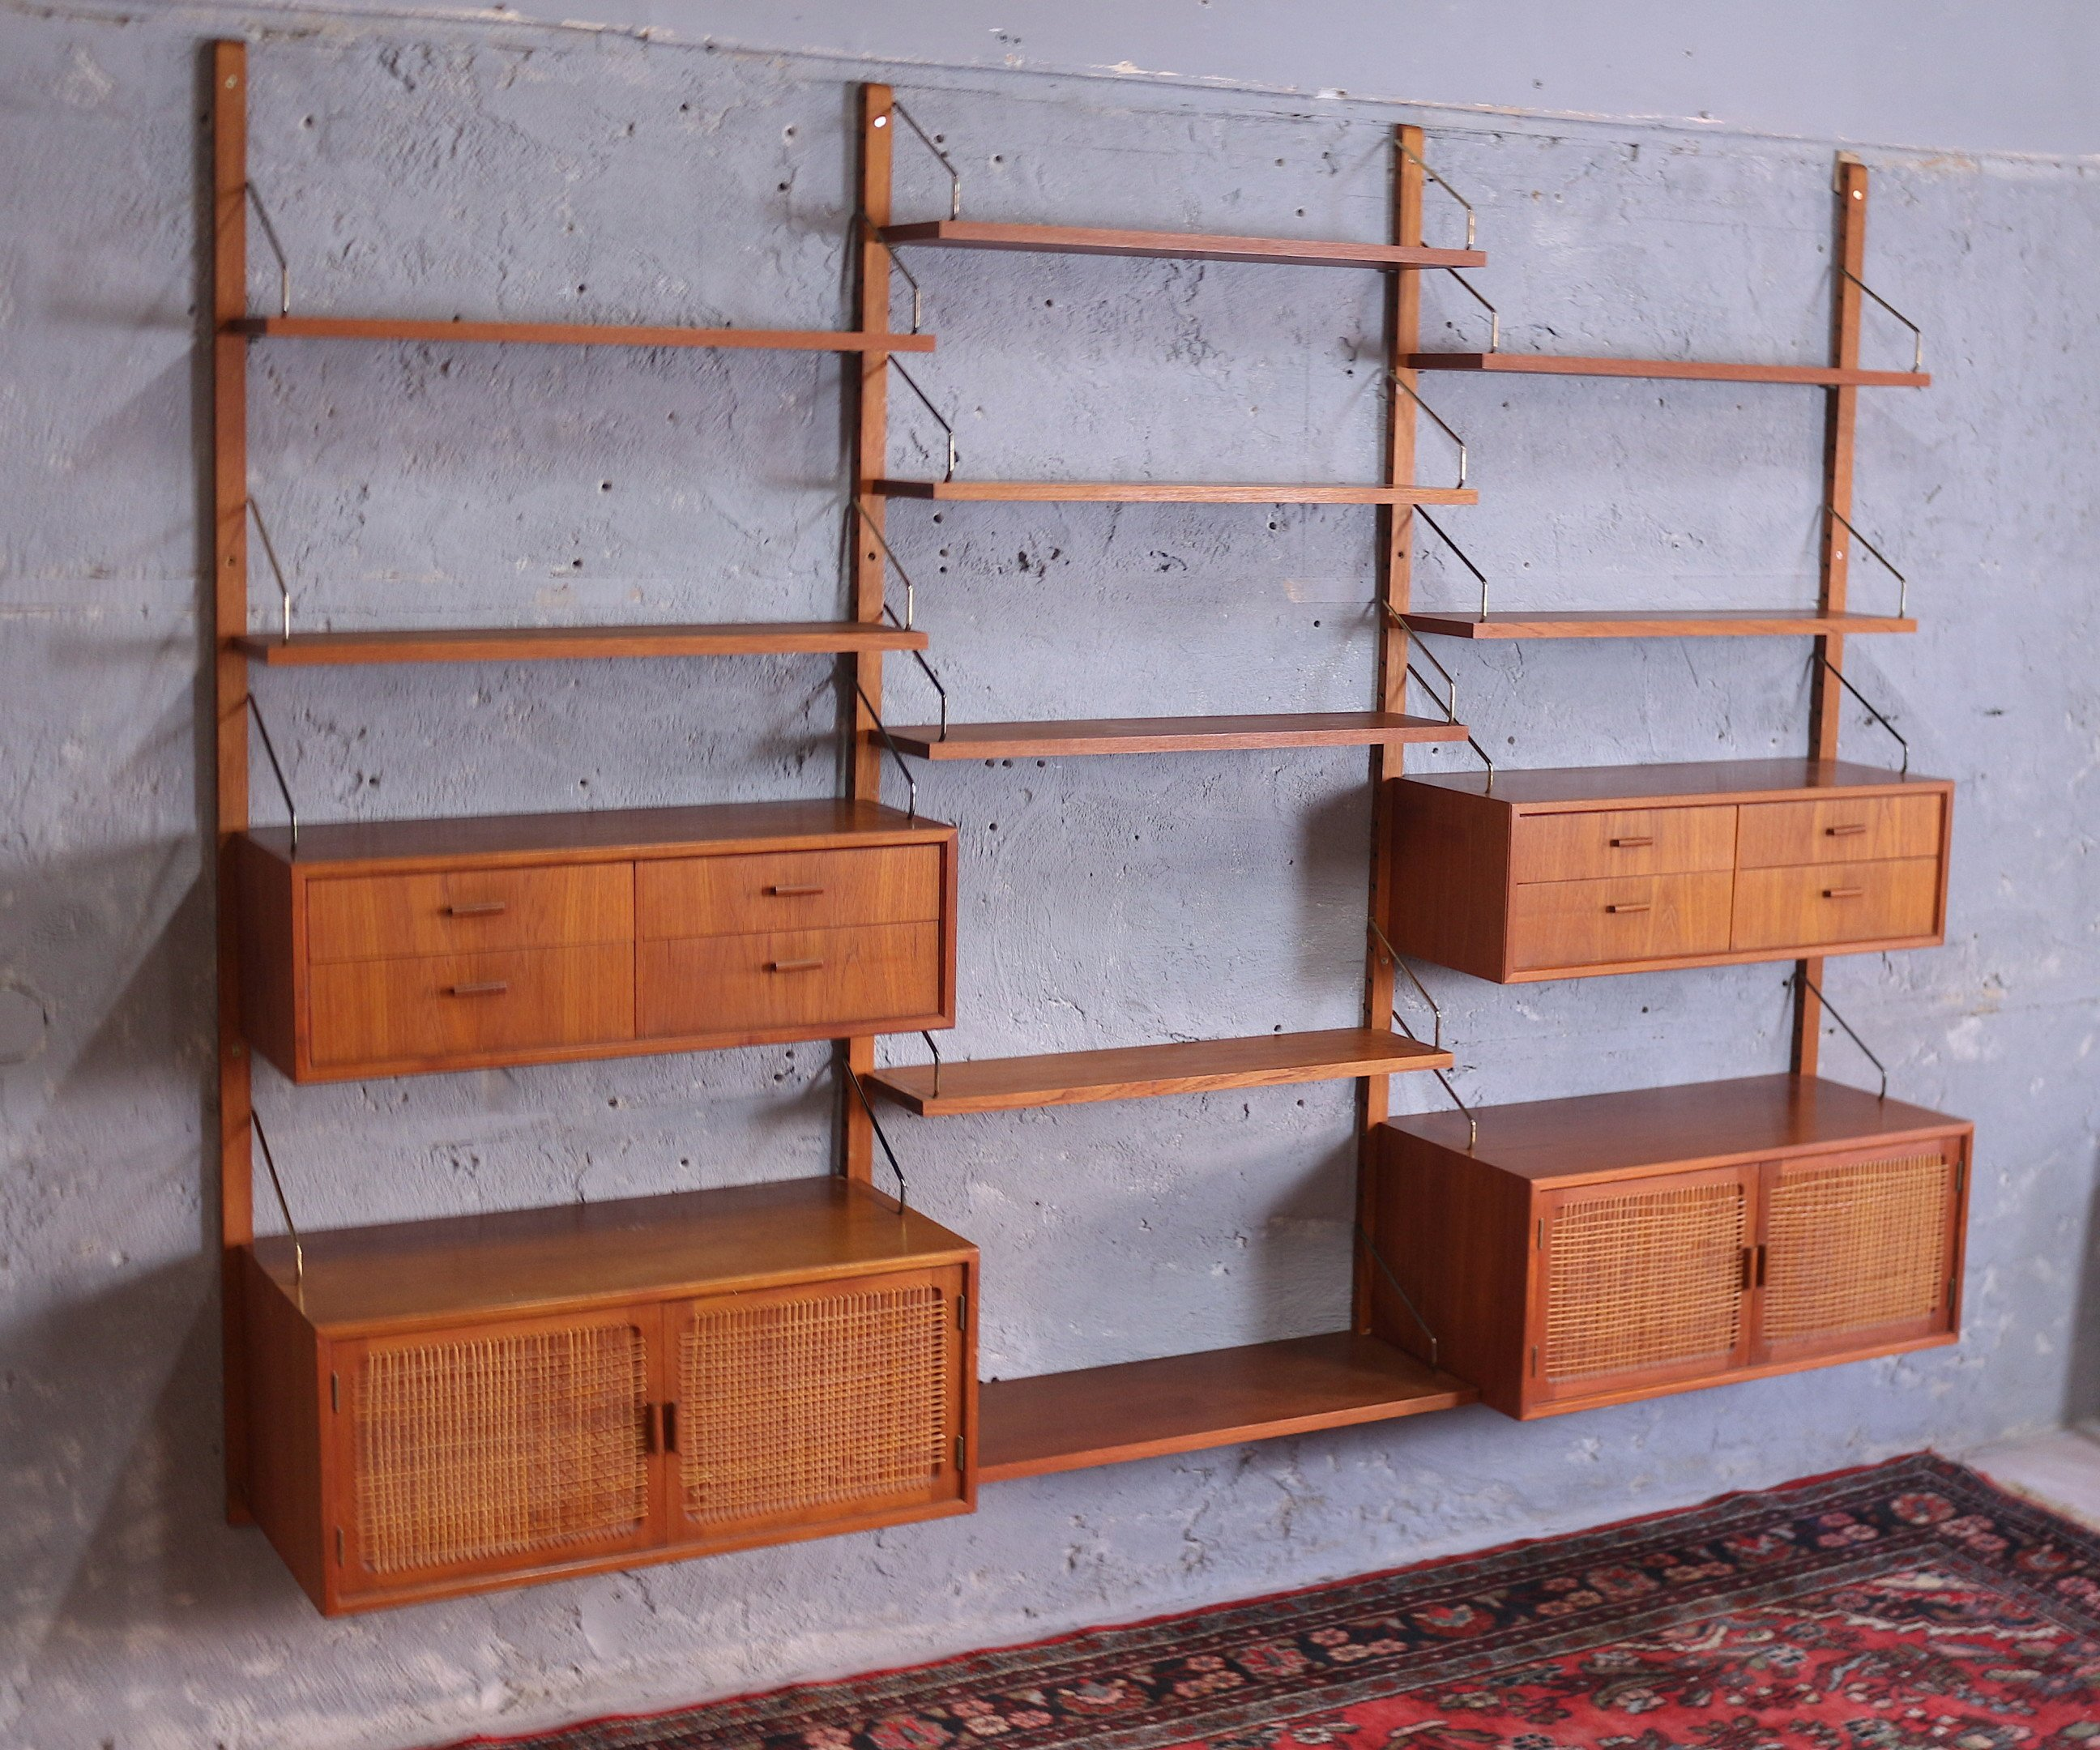 Wall Unit, Gustav Bahus, Norway, 1960s - 503350 - photo